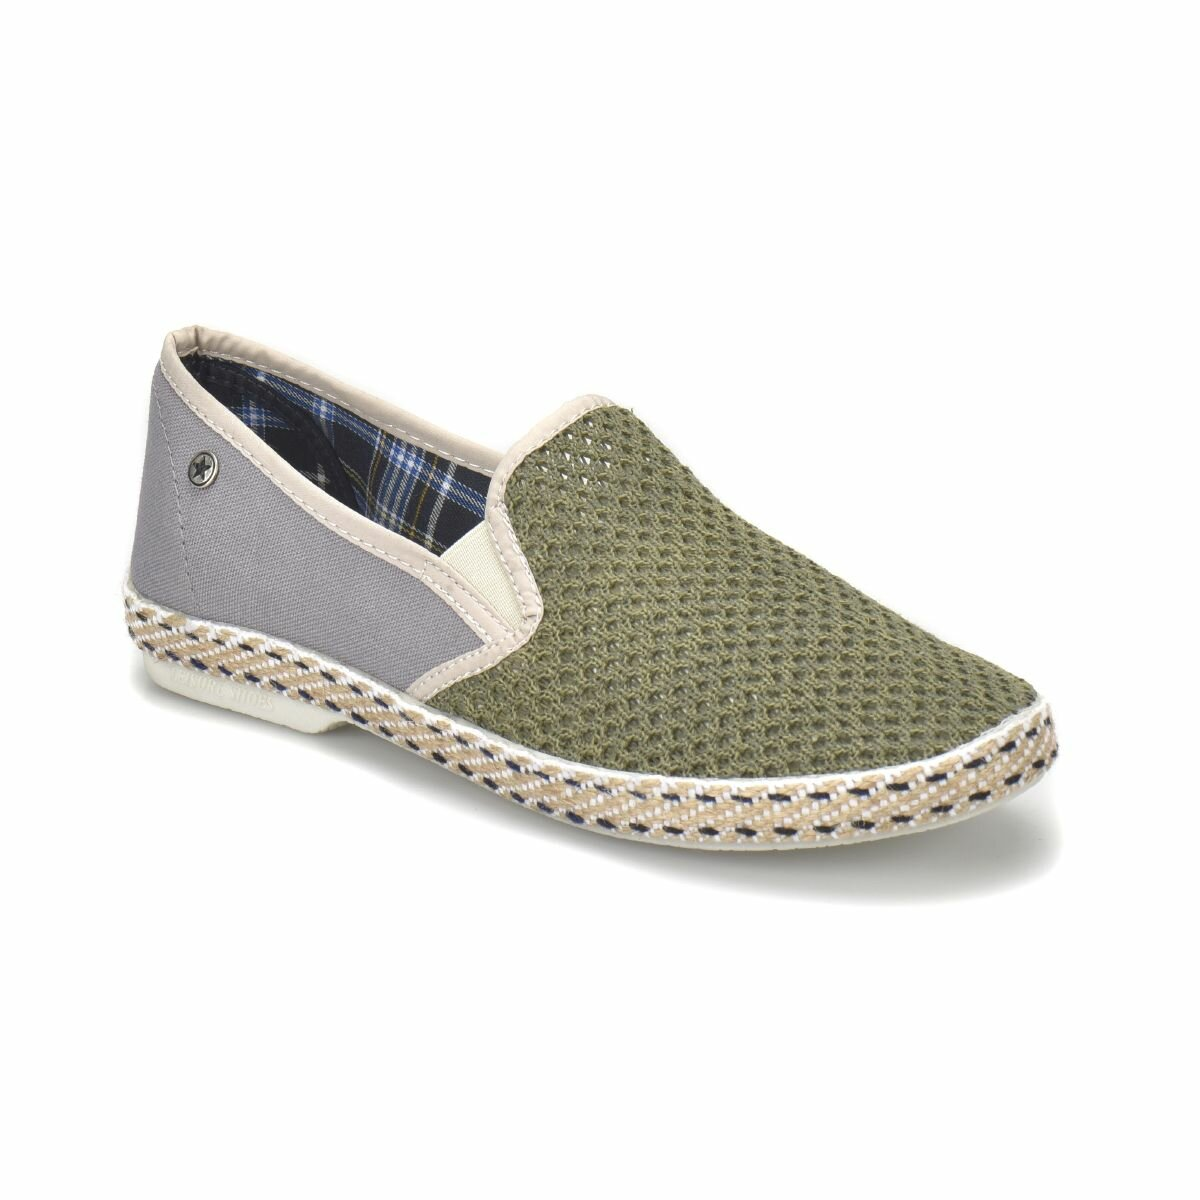 FLO 516 Khaki Men 'S Shoes Panama Club